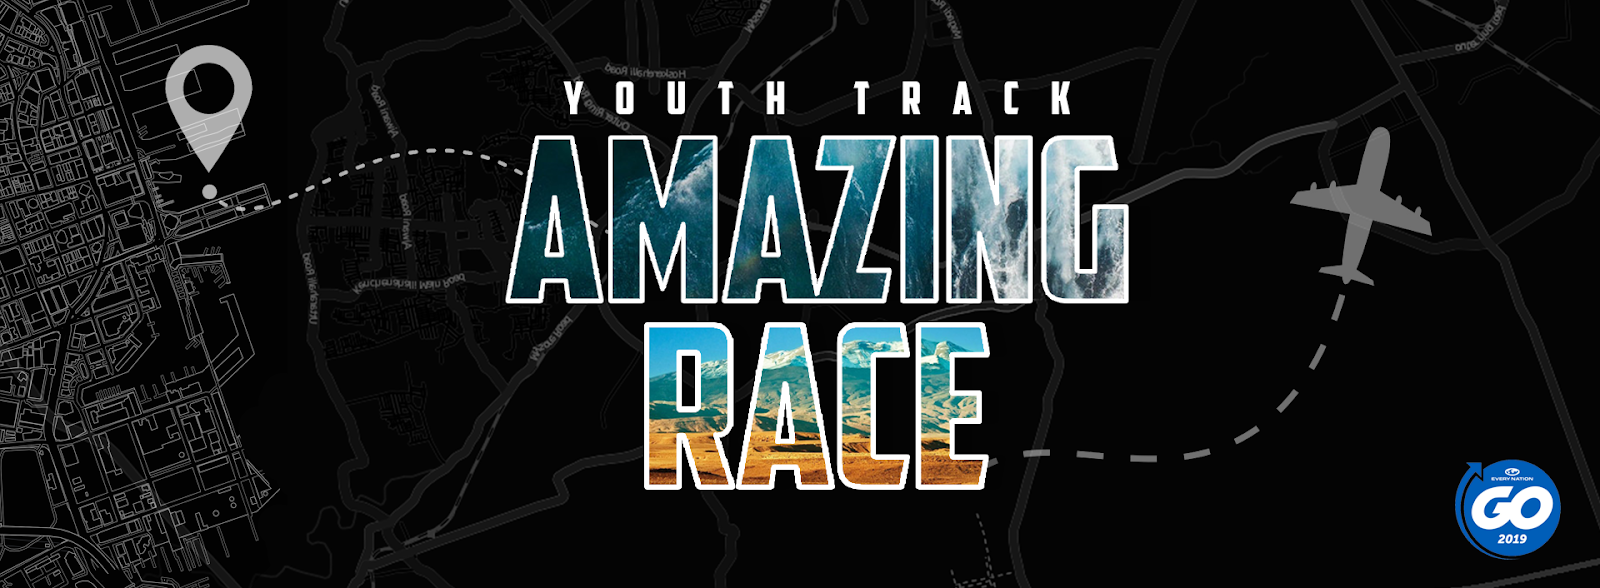 Youth Track Amazing Race Horizontal2.png